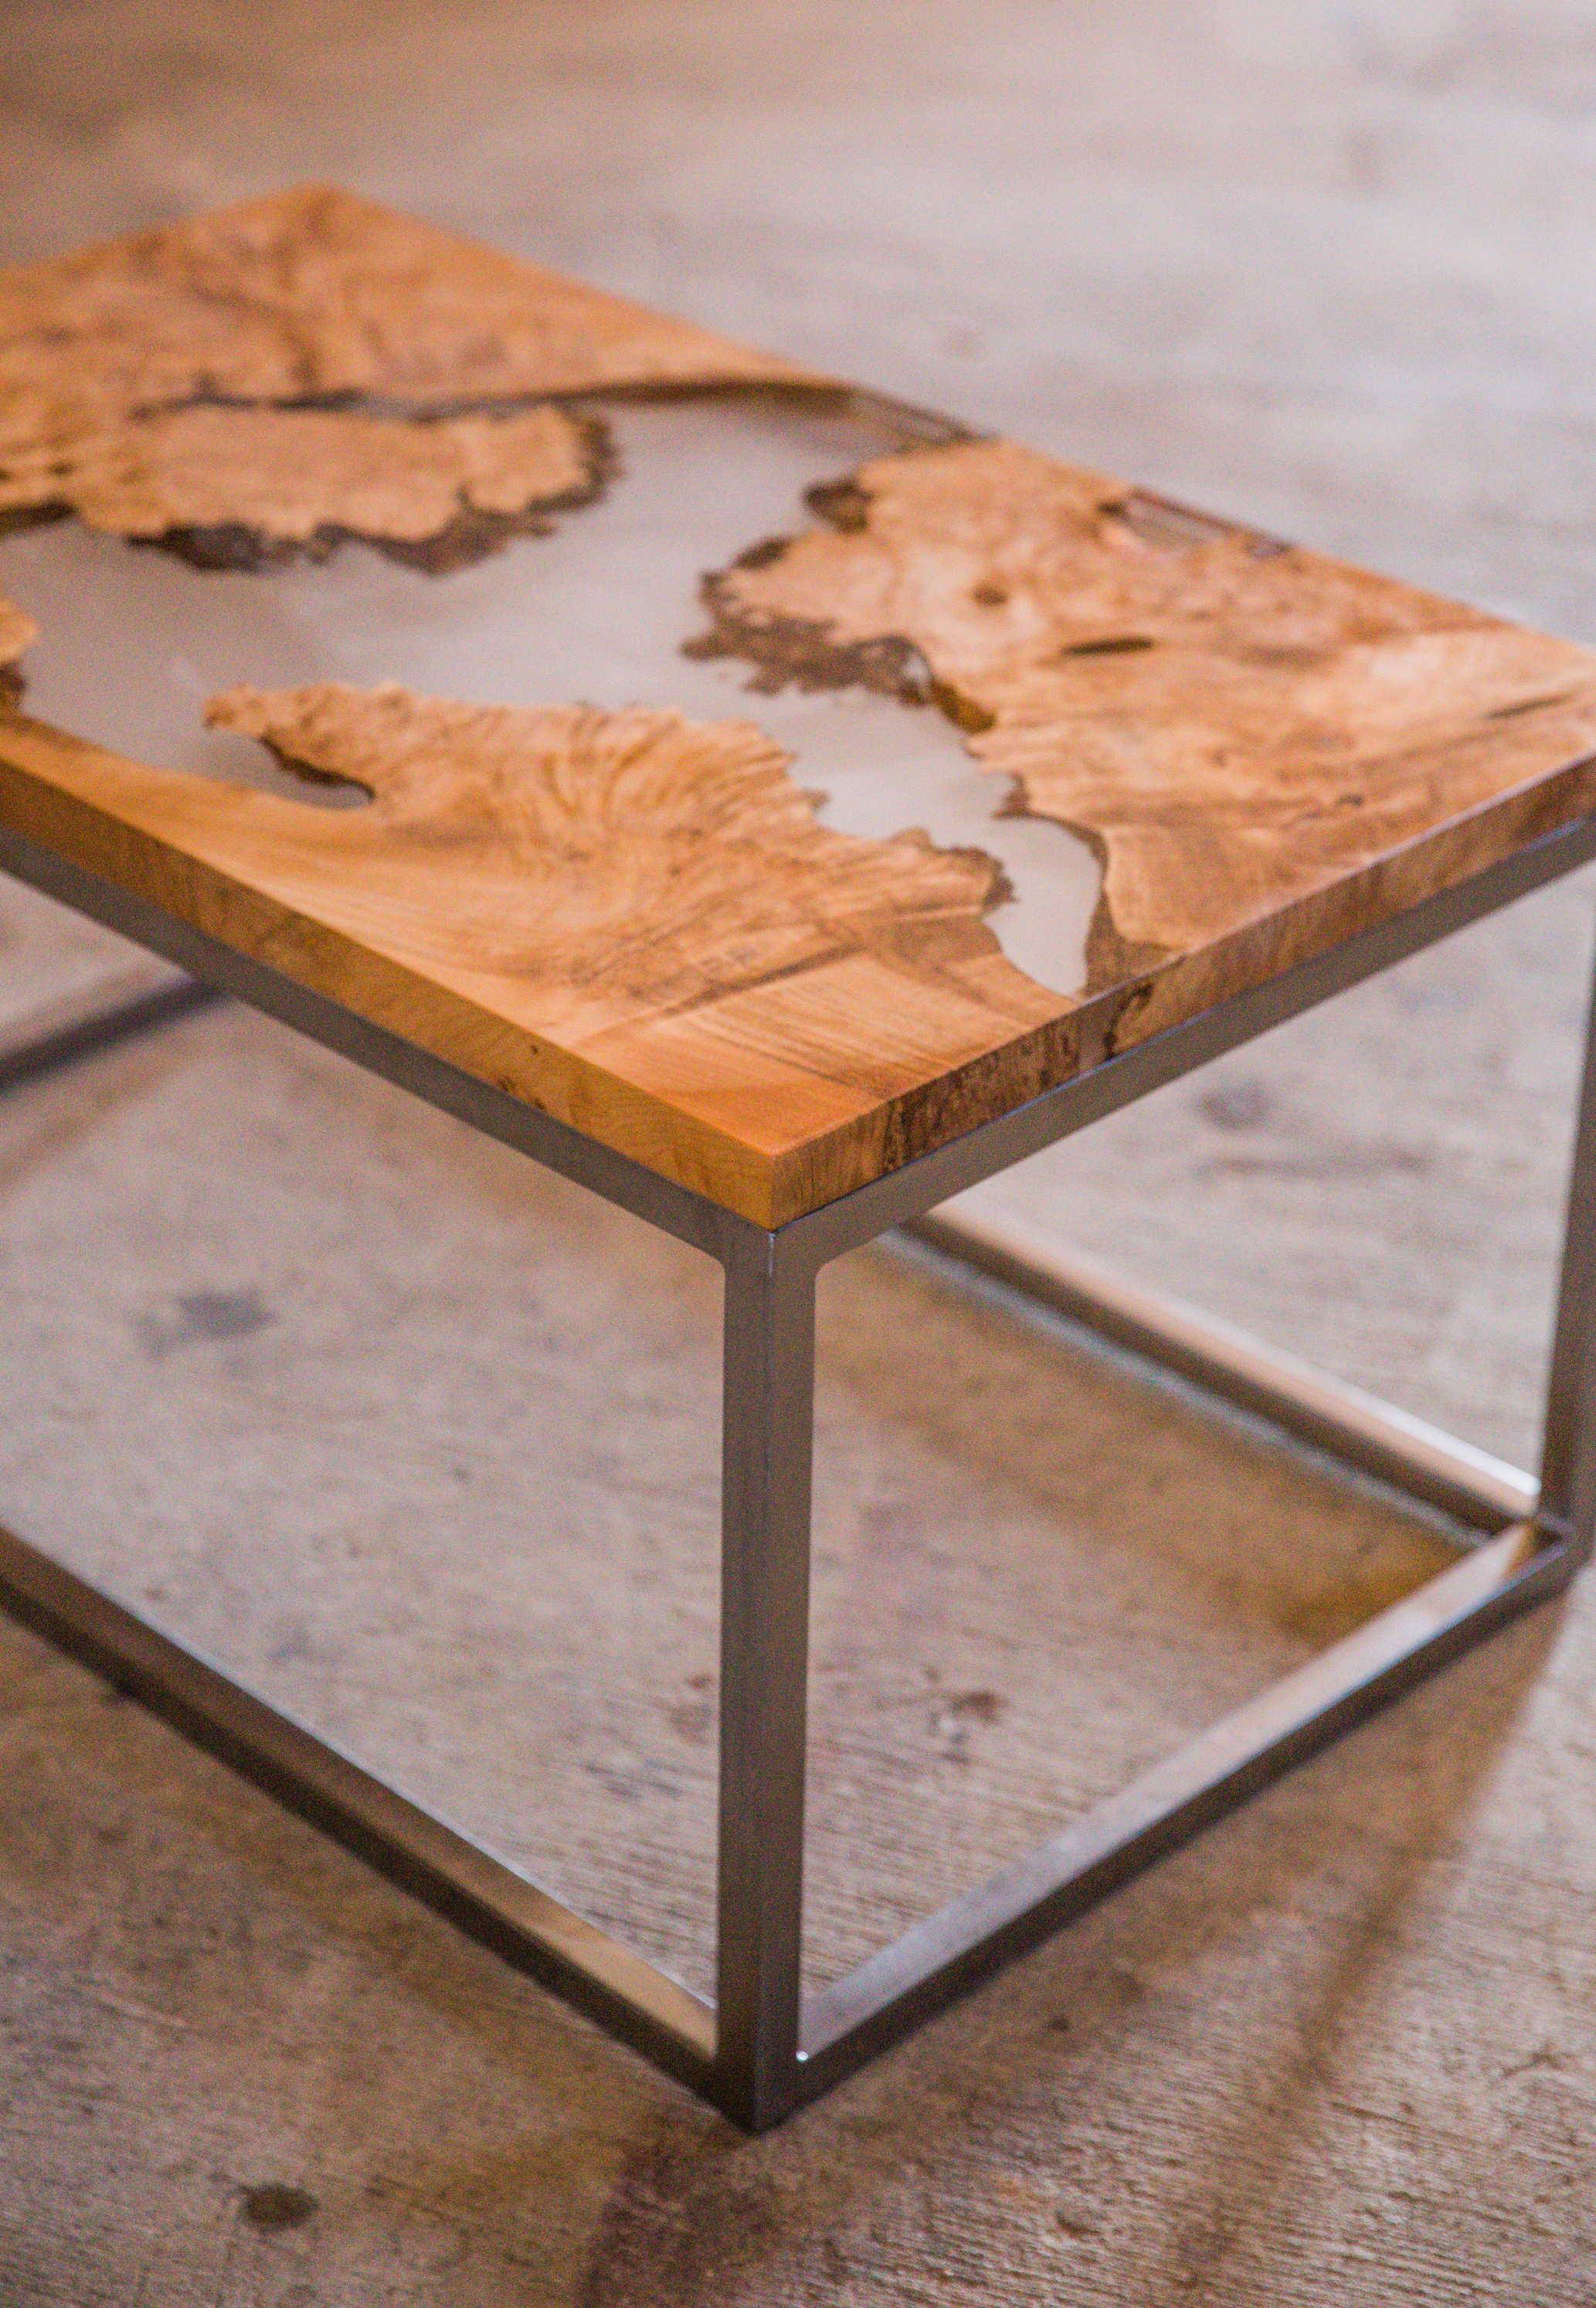 Maple Resin Table 12.jpg